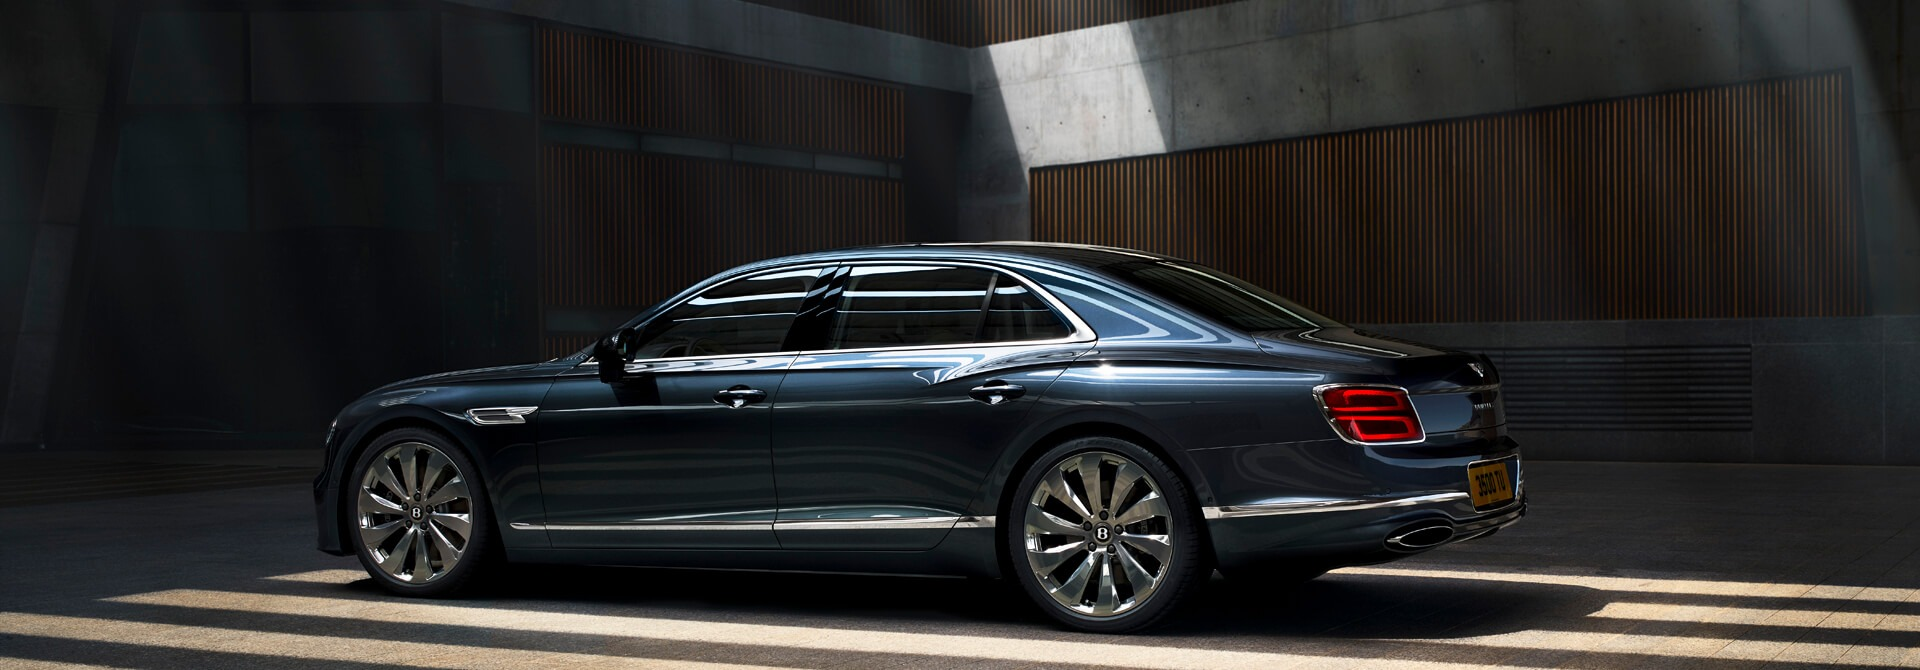 New-2021-Bentley-Flying-Spur